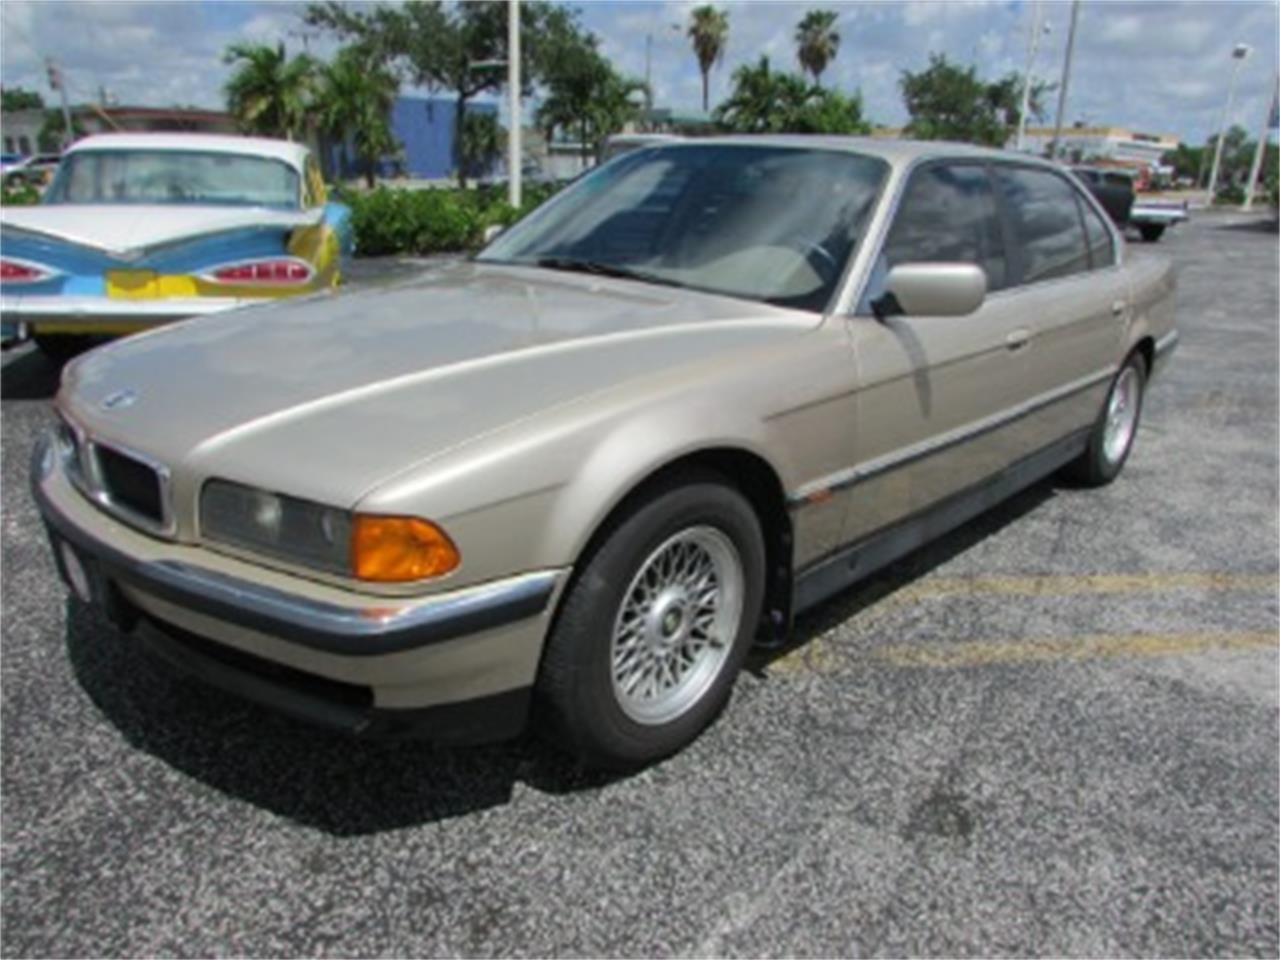 for sale 1998 bmw 7 series in miami, florida cars - miami, fl at geebo